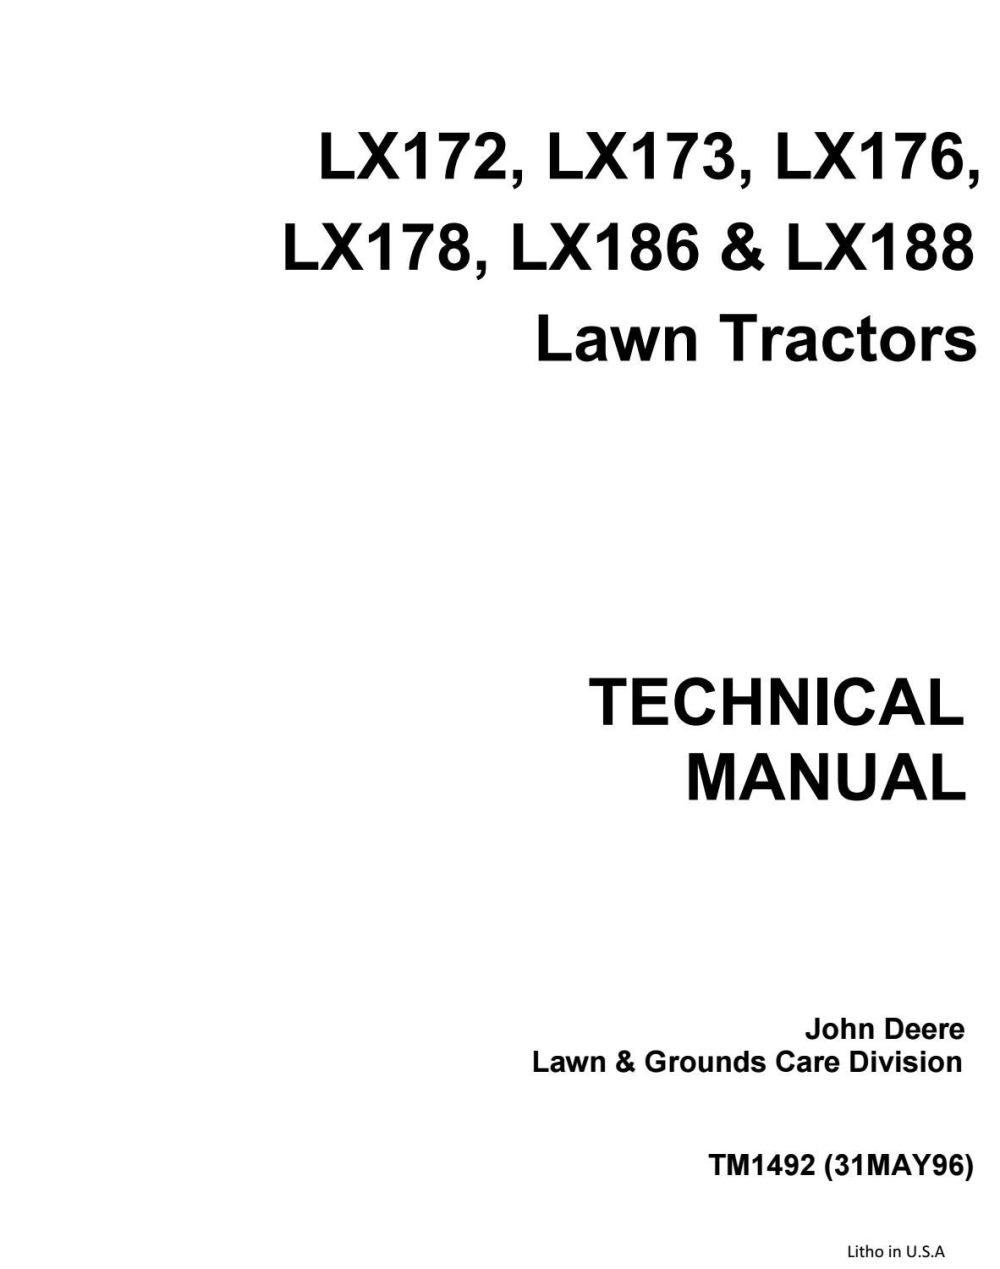 medium resolution of john deere lx173 lawn garden tractor service repair manual